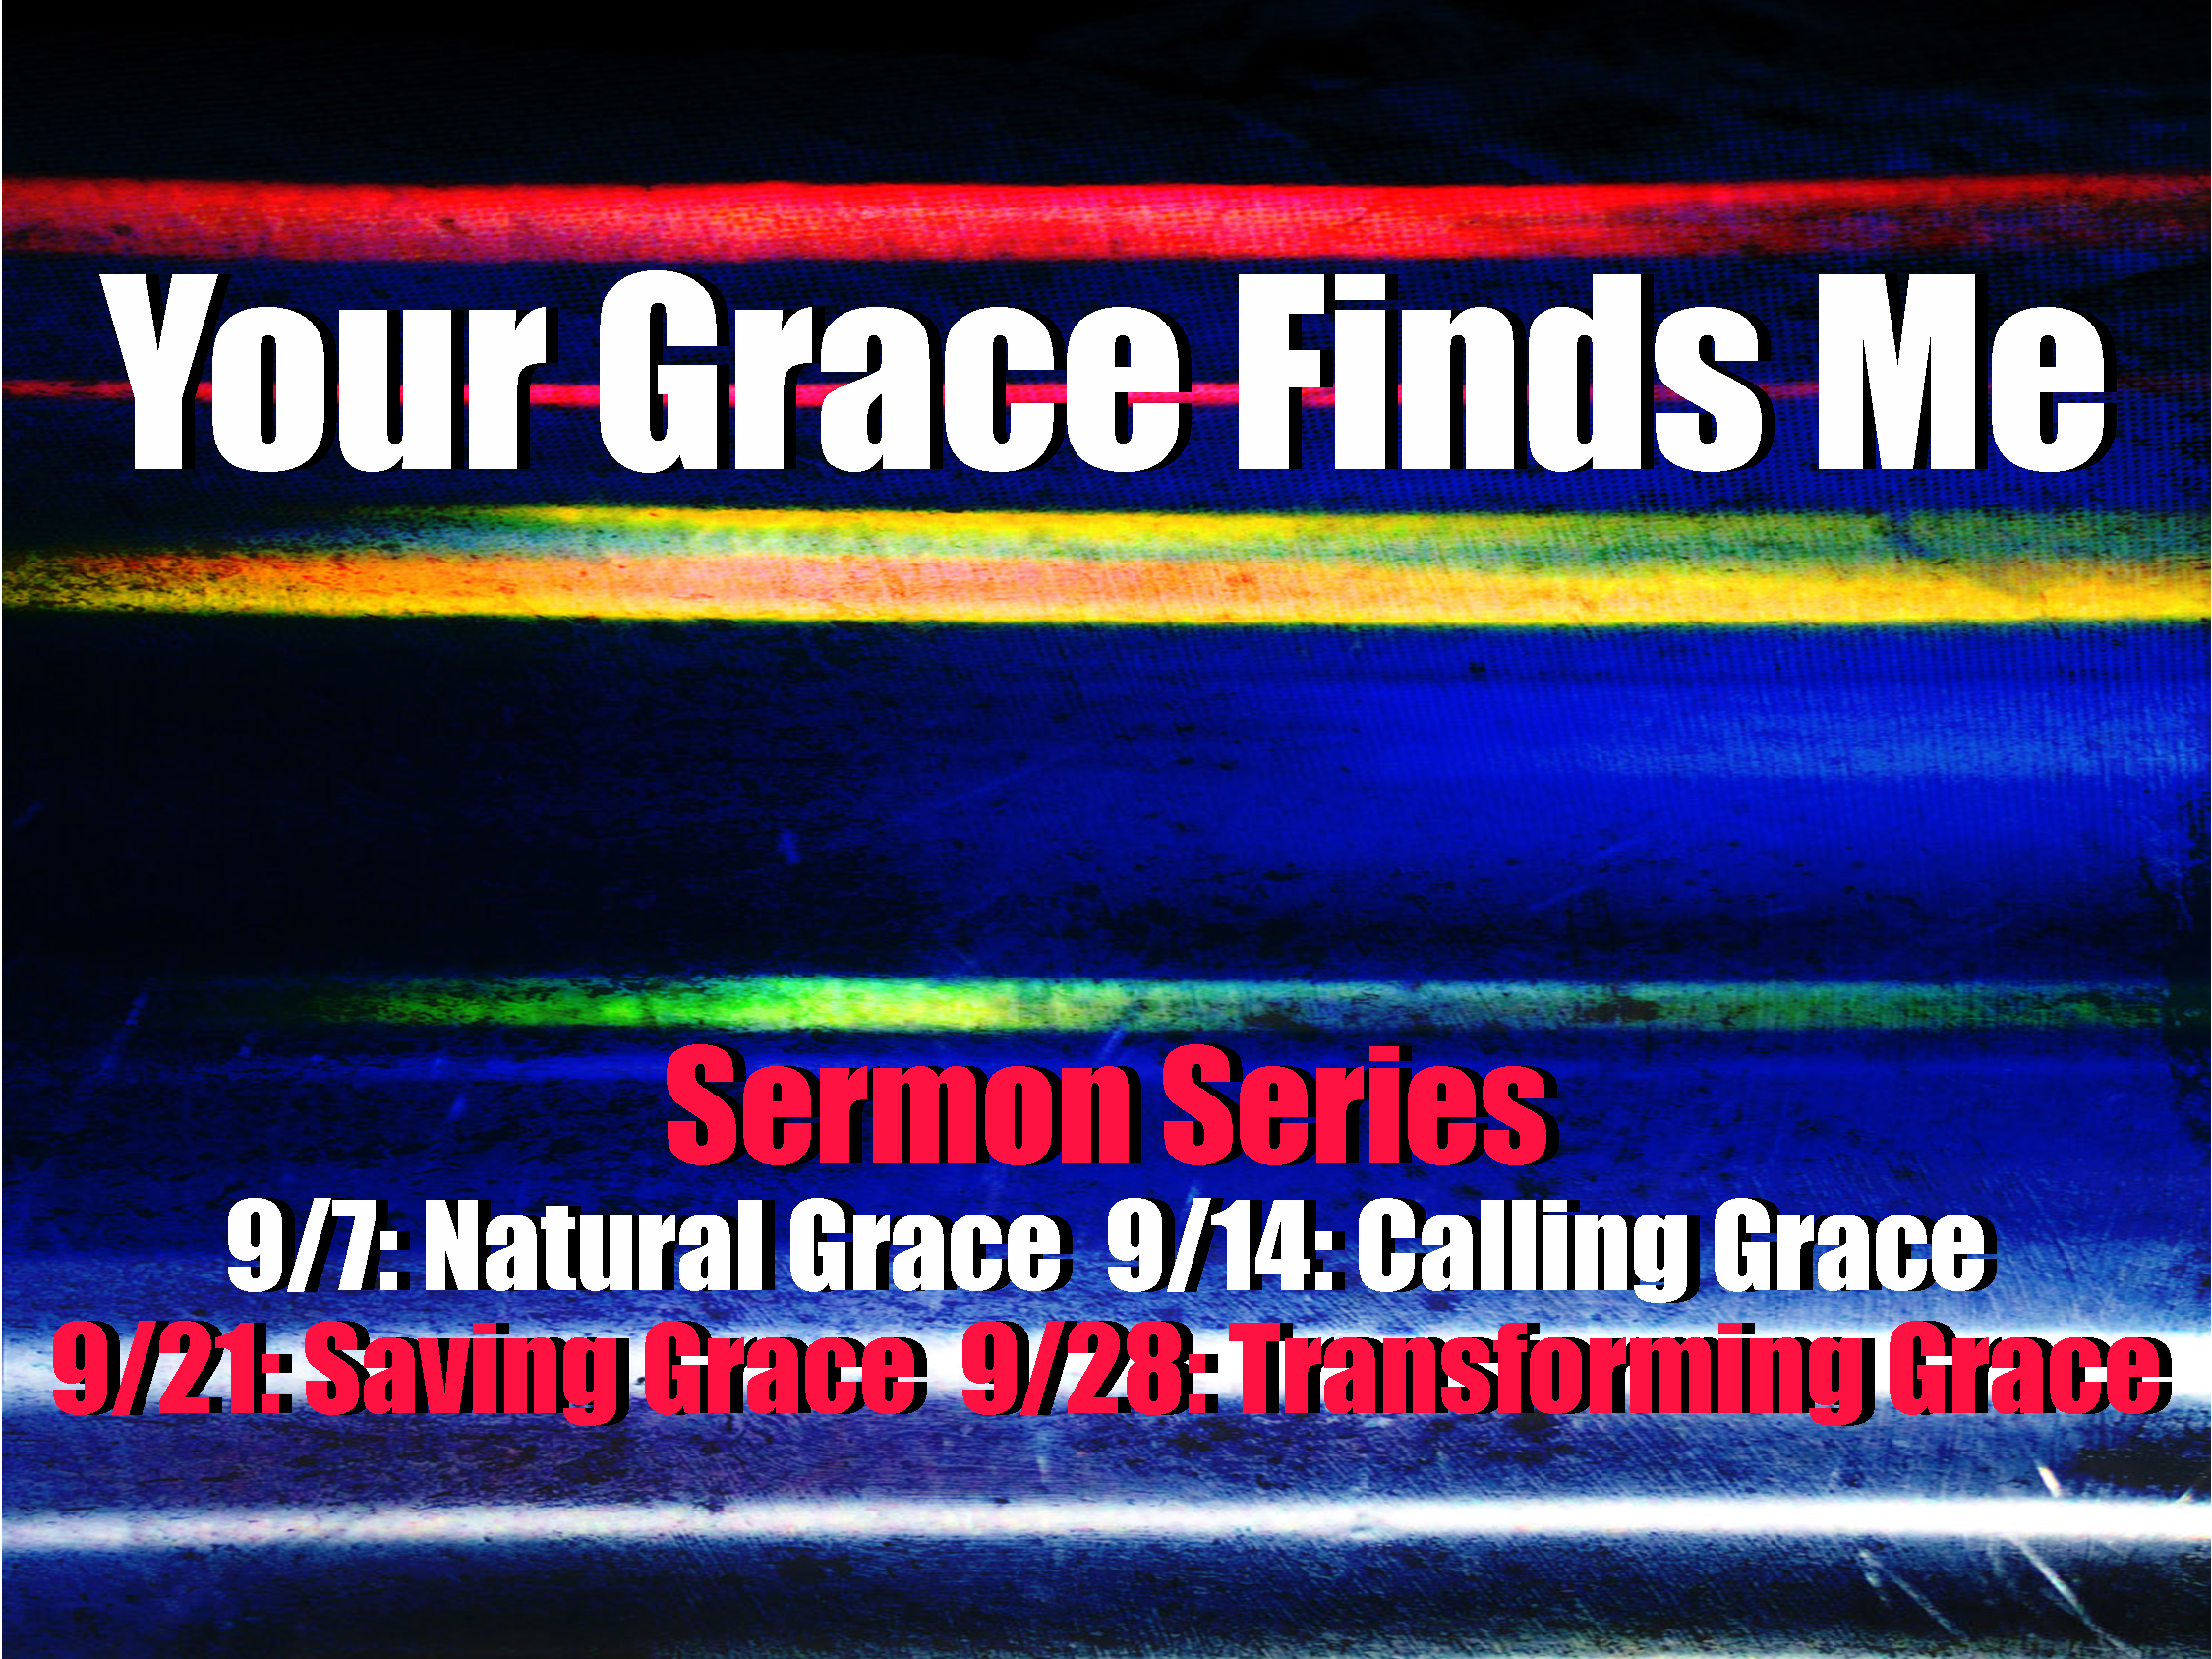 Your Grace Finds Me (New Sermon Series) | Dundalk Free Methodist